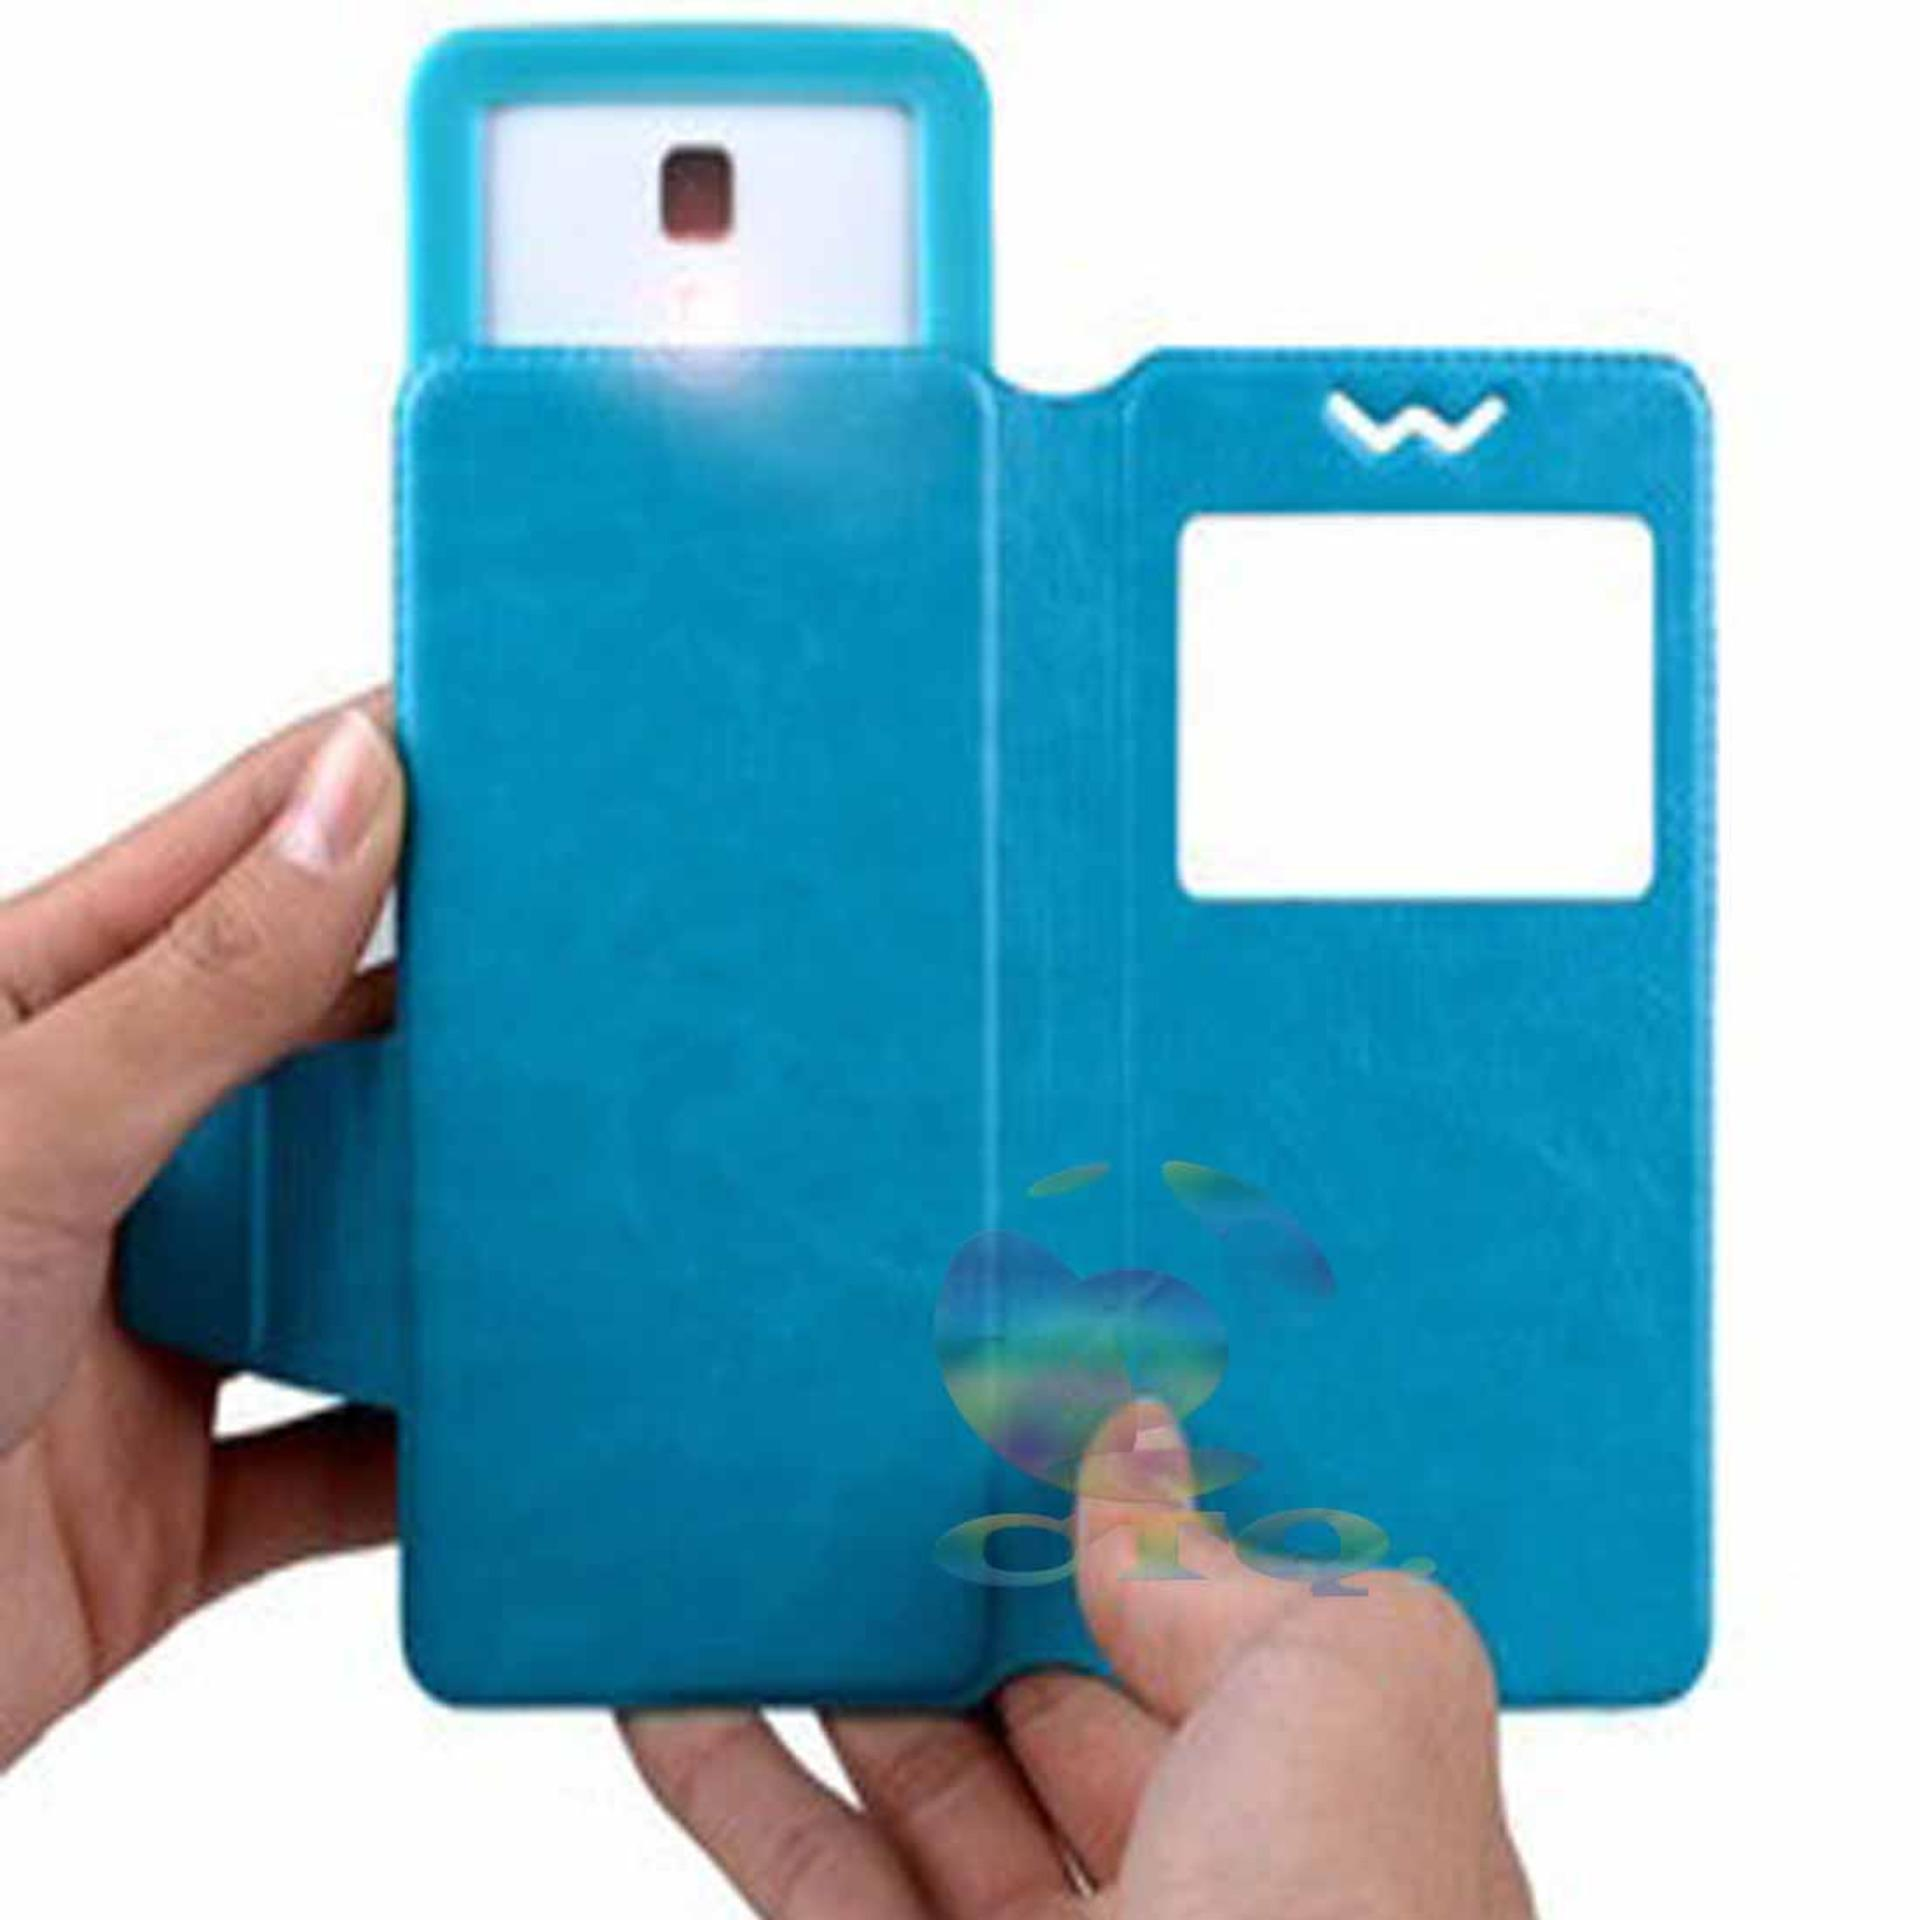 Leather Windows View Case For Evercoss Elevate Y2 Power Smartphone Slide Up Universal Flipshell